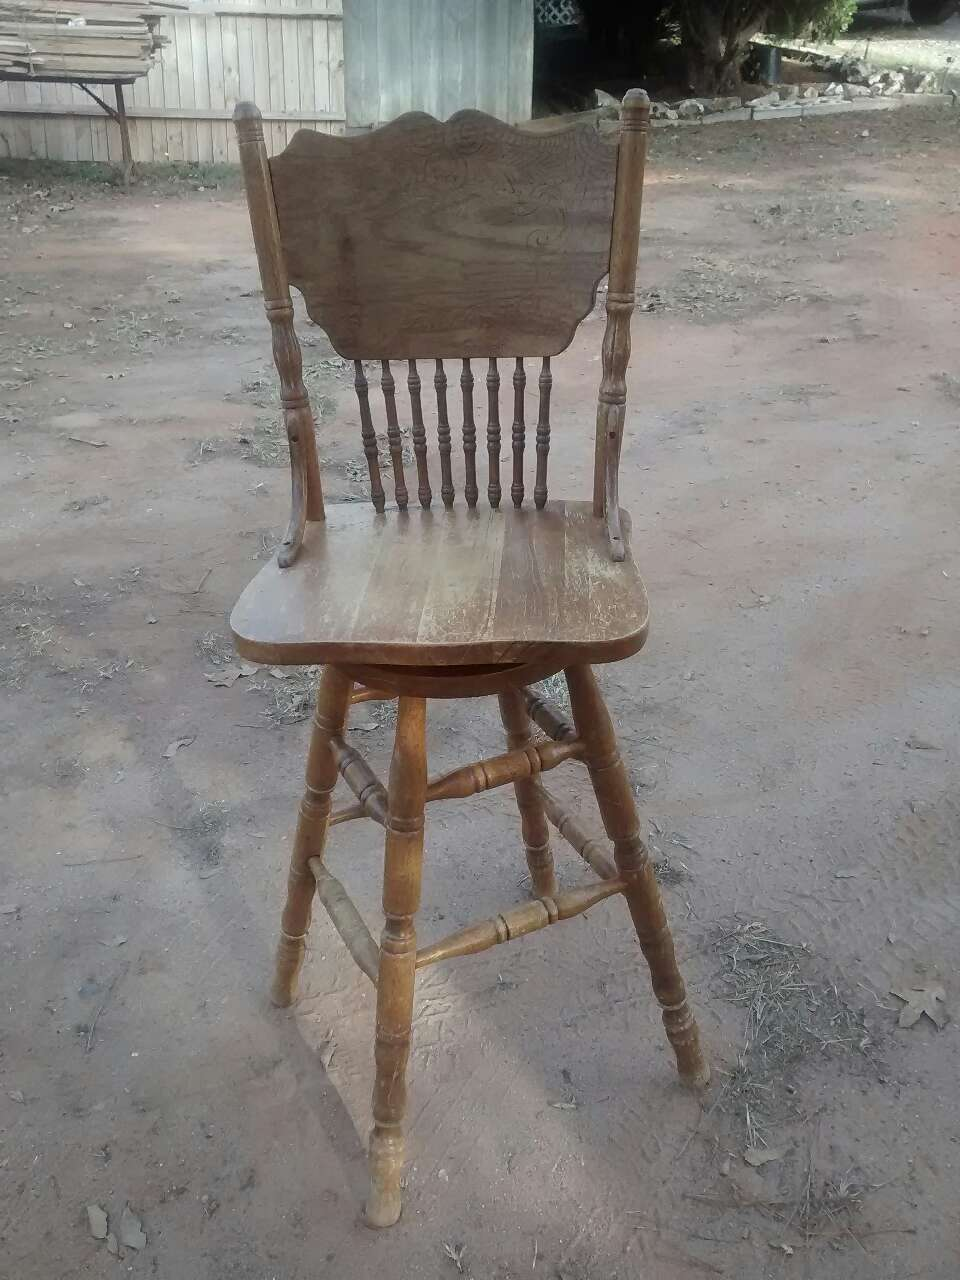 Home and garden products in Belton SC letgo : b7b179ee7f70e13a7021c6fc6c01edb8 from us.letgo.com size 960 x 1280 jpeg 115kB